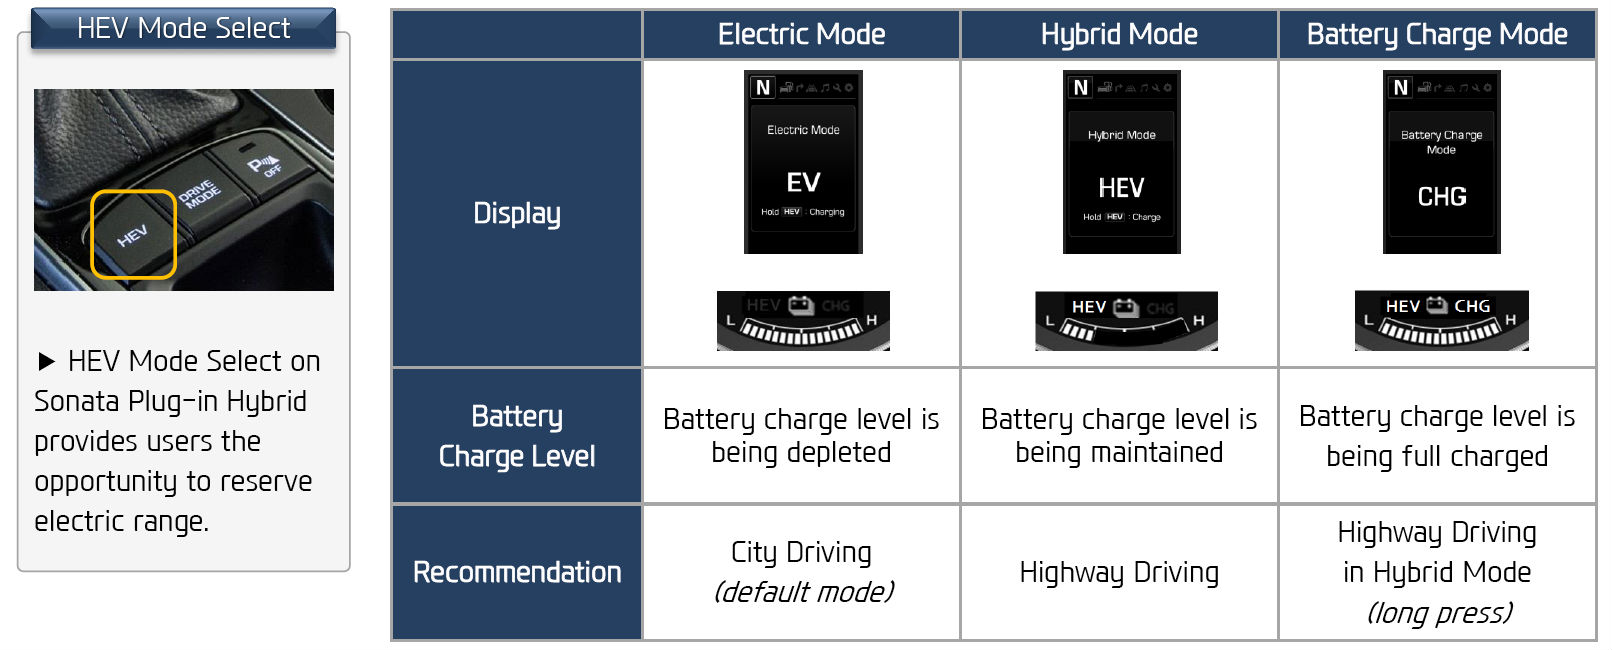 battery_charge_mode